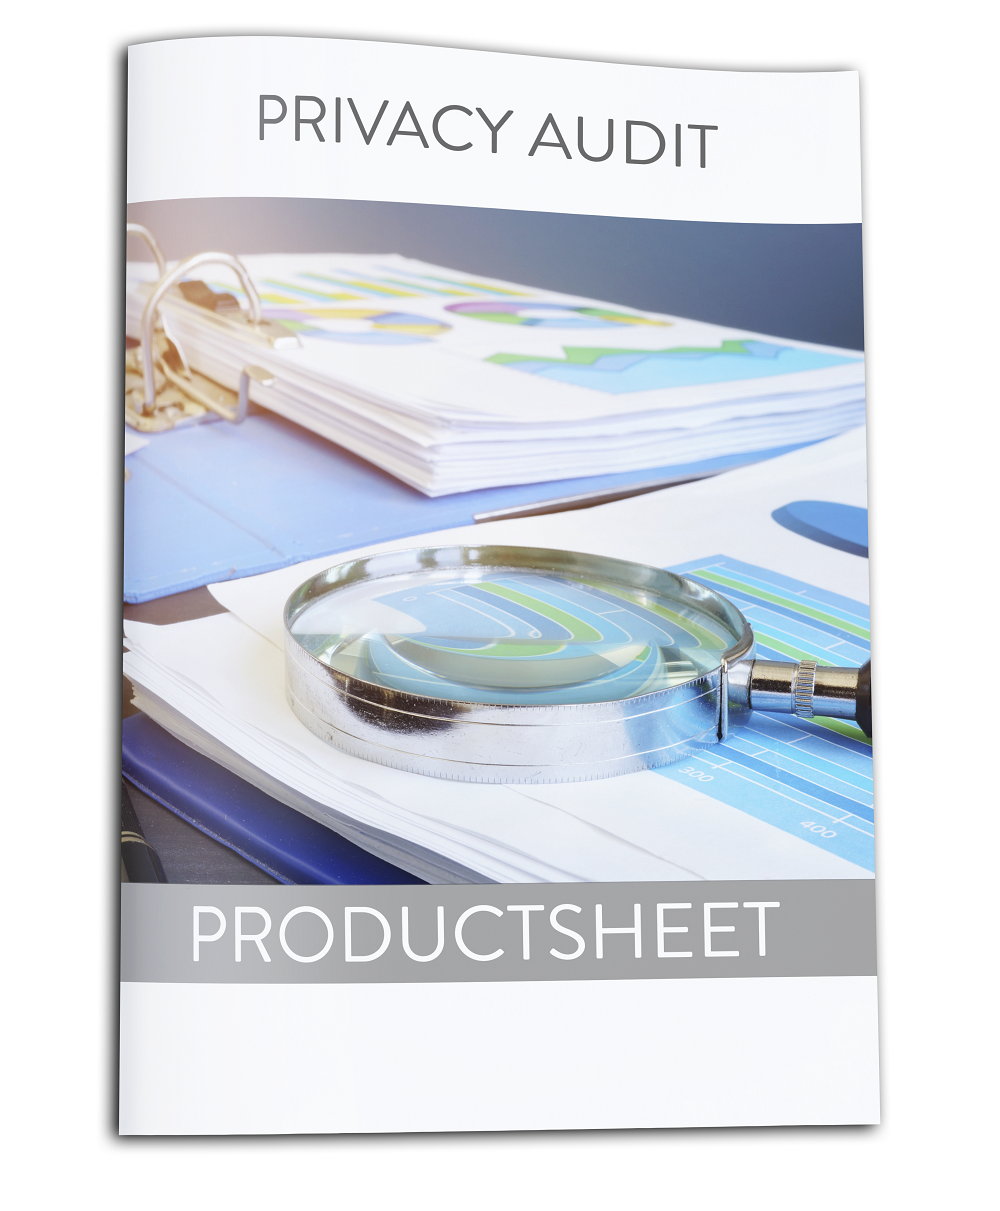 Audittrail Productsheet Privacy Audit